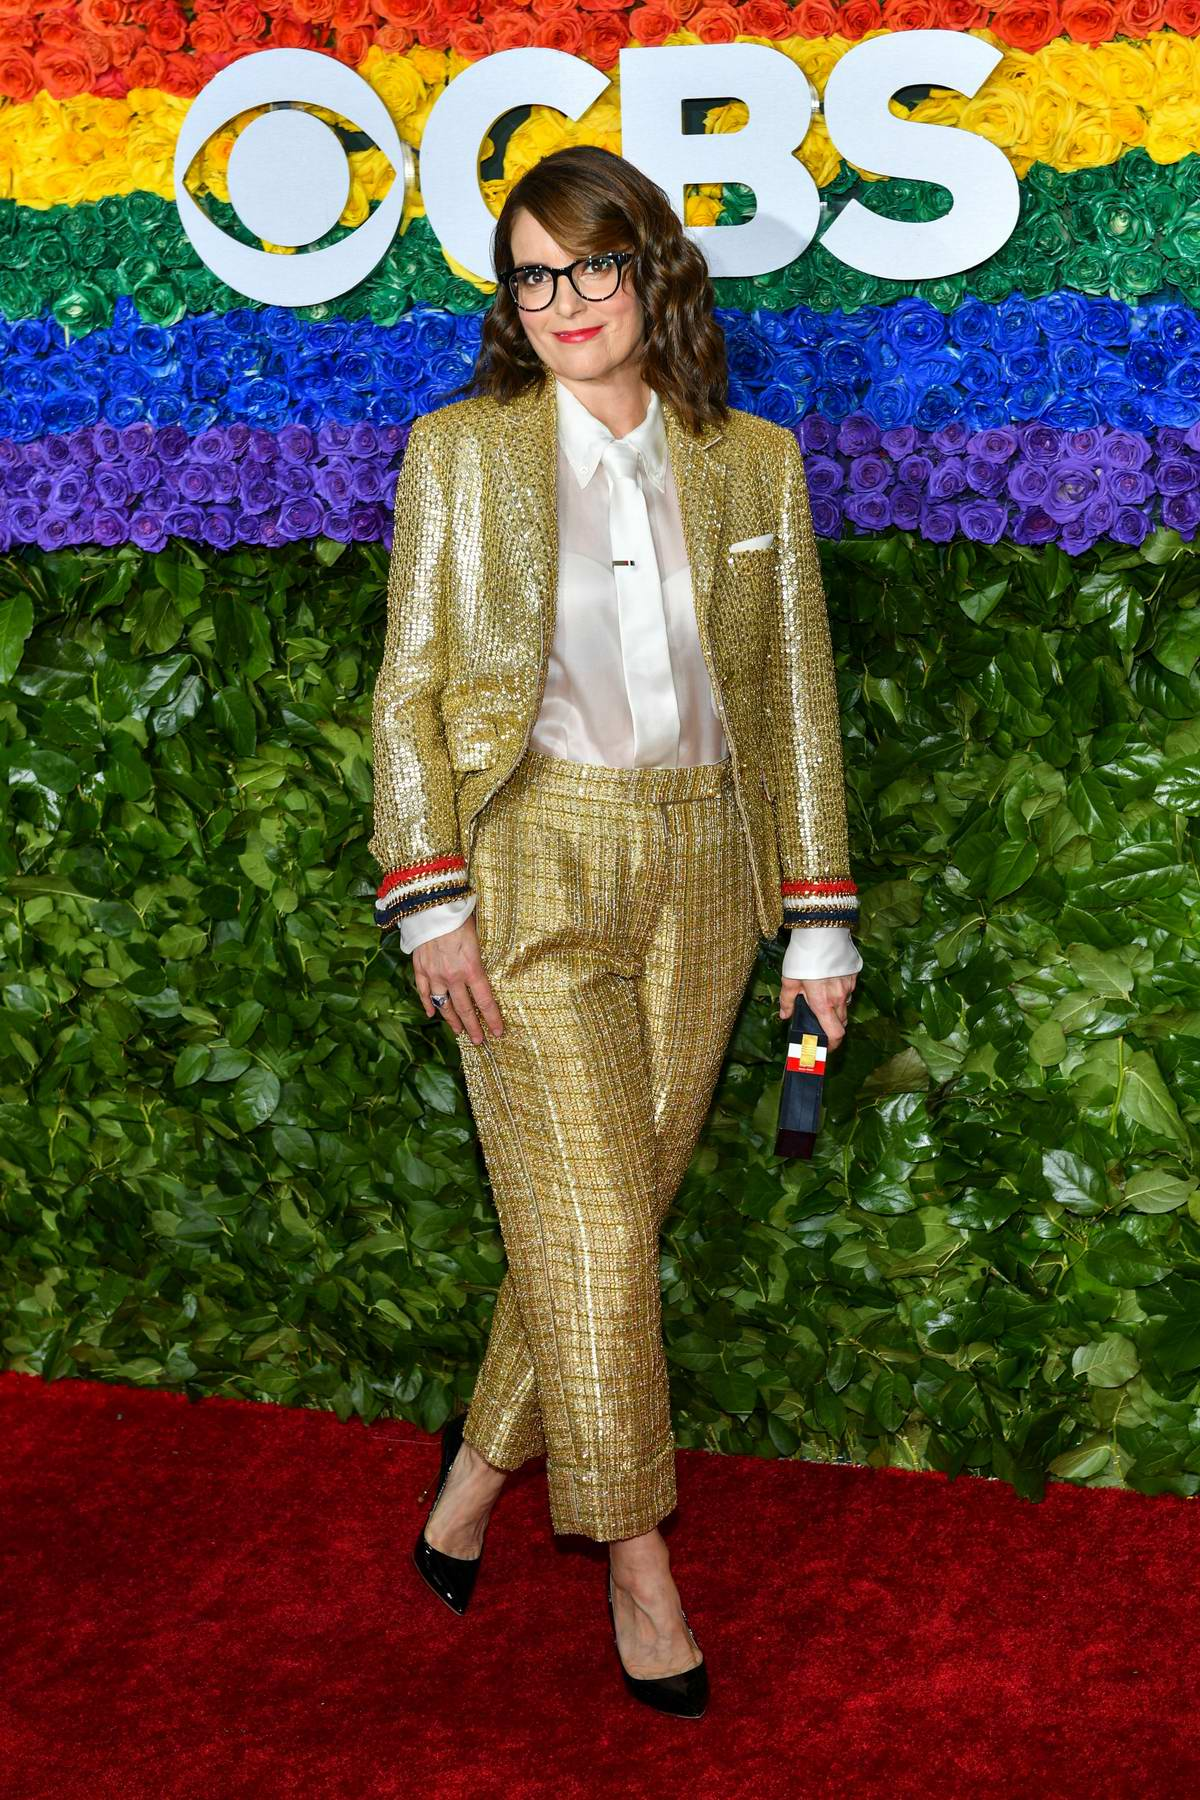 Tina Fey attends the 73rd annual Tony Awards at Radio City Music Hall in New York City